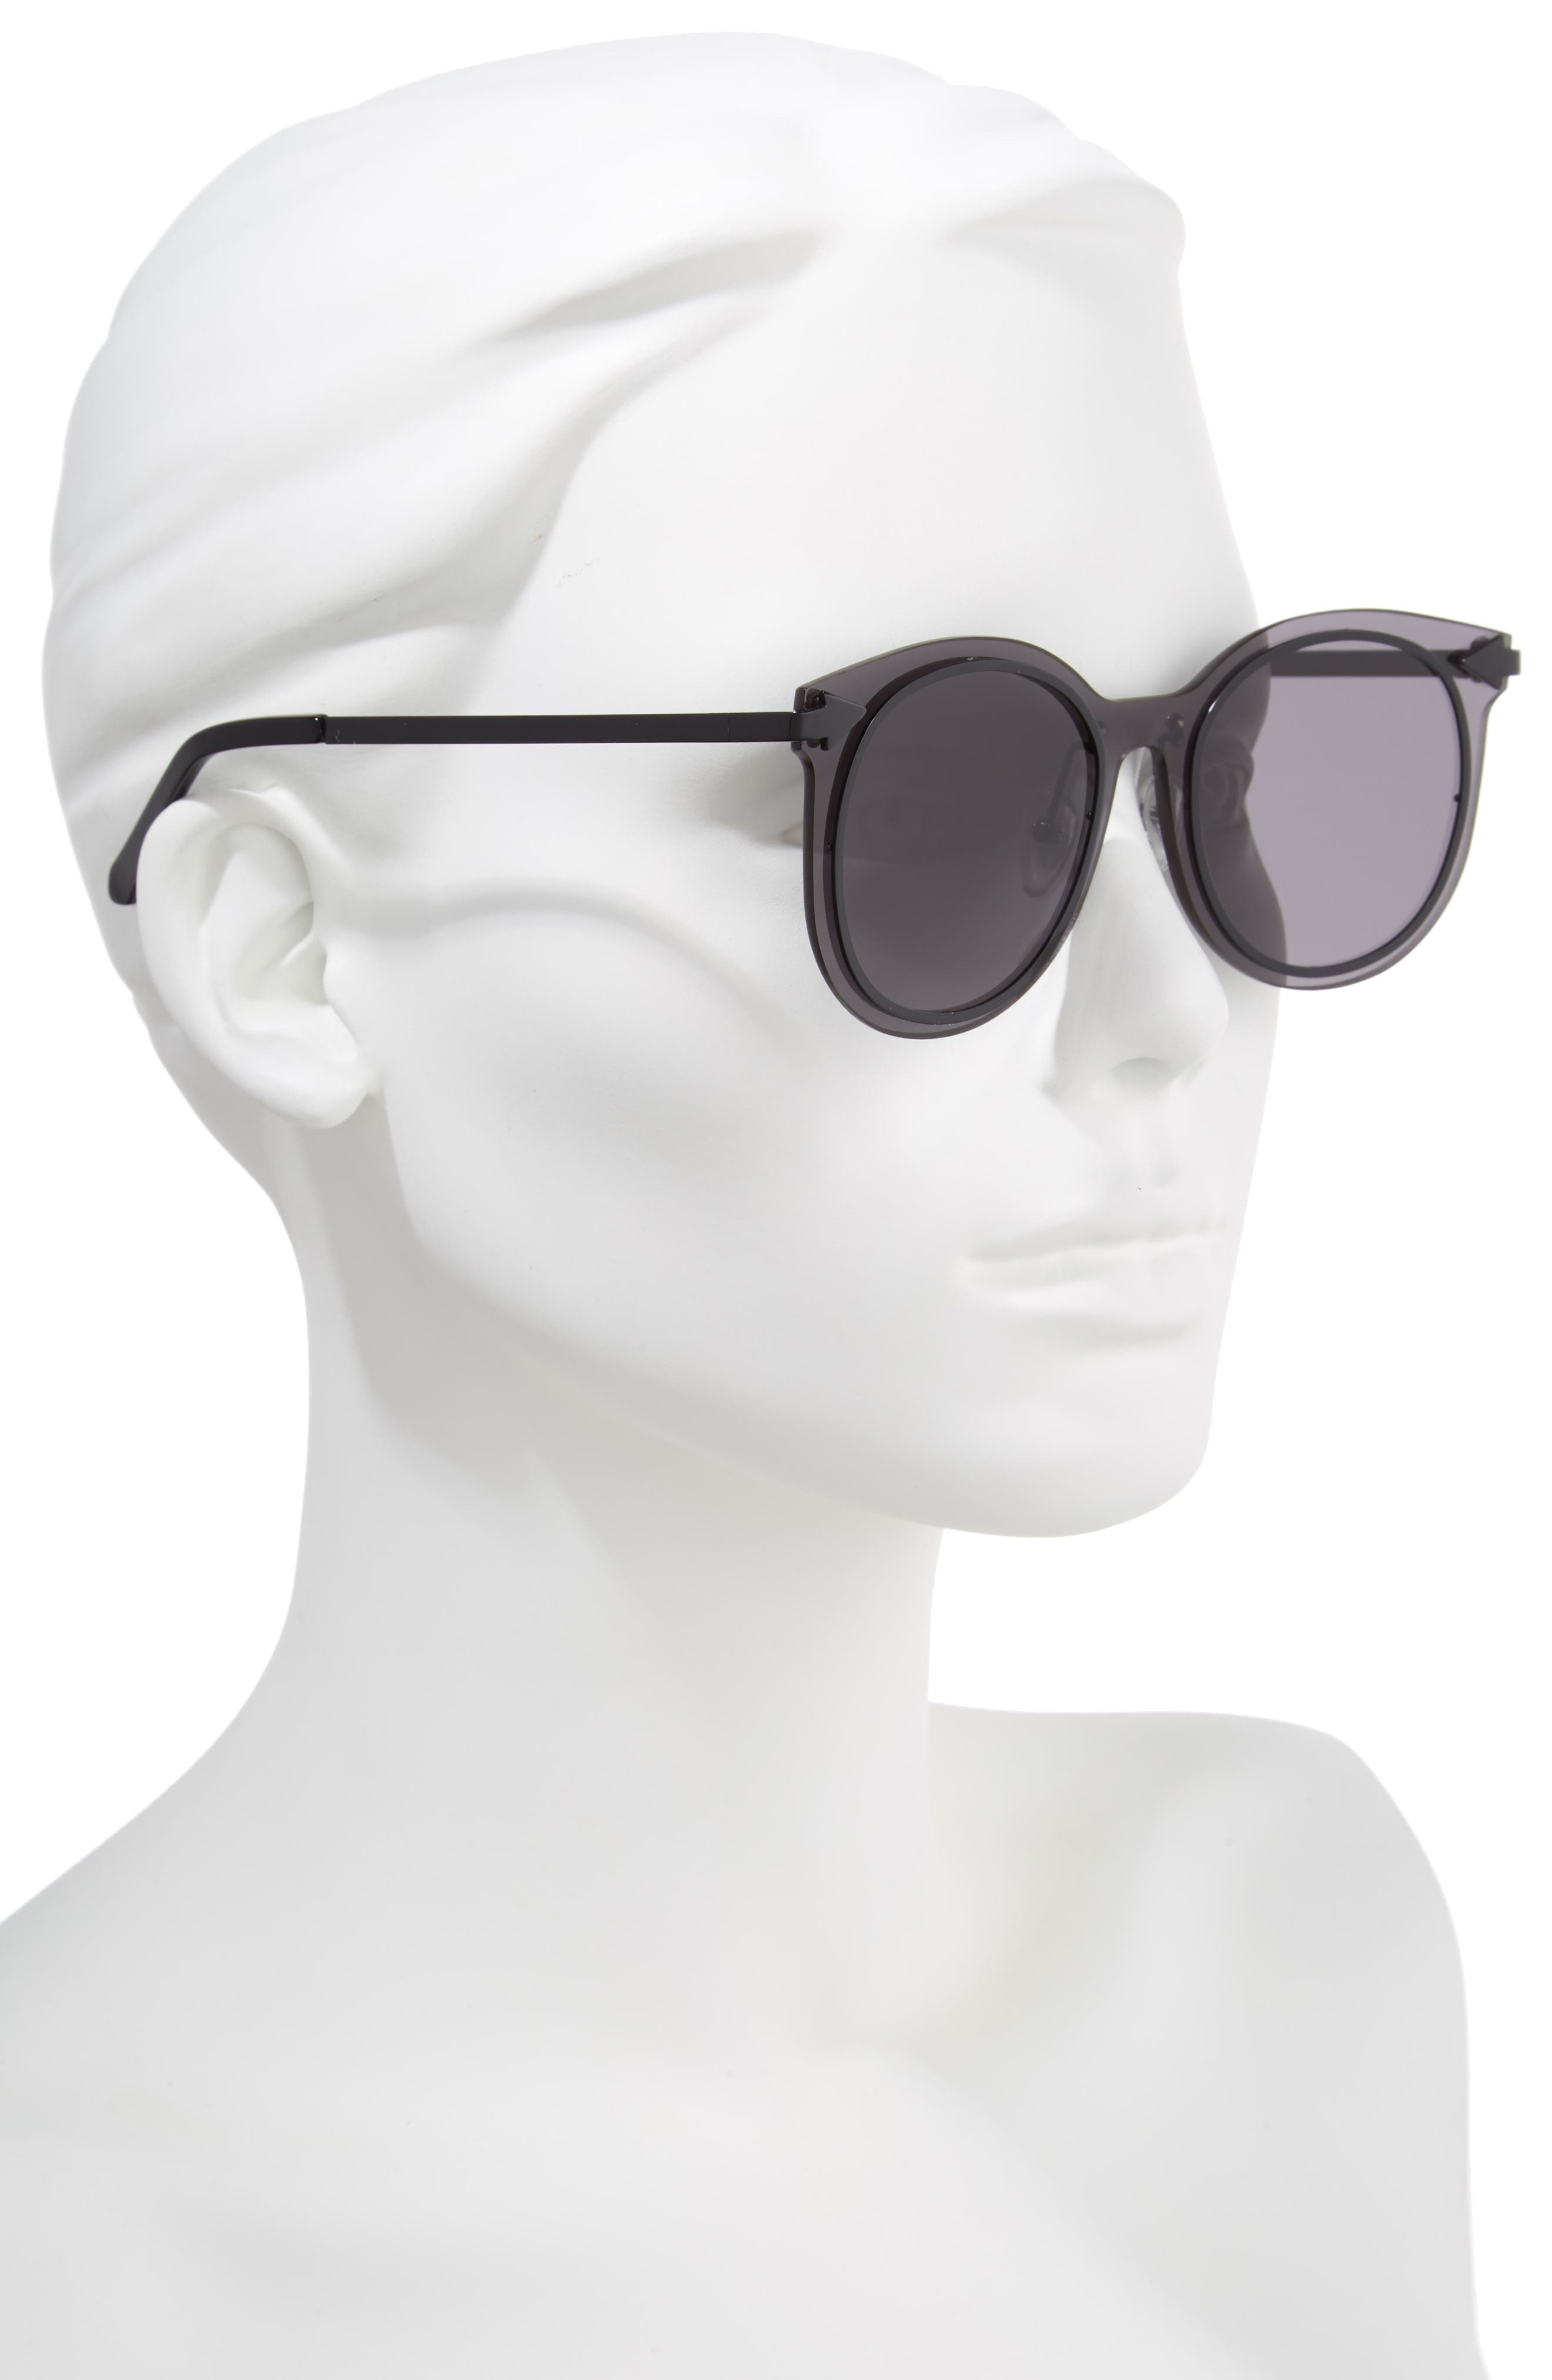 Miss Persimmon 51mm Sunglasses,                             Alternate thumbnail 2, color,                             BLACK